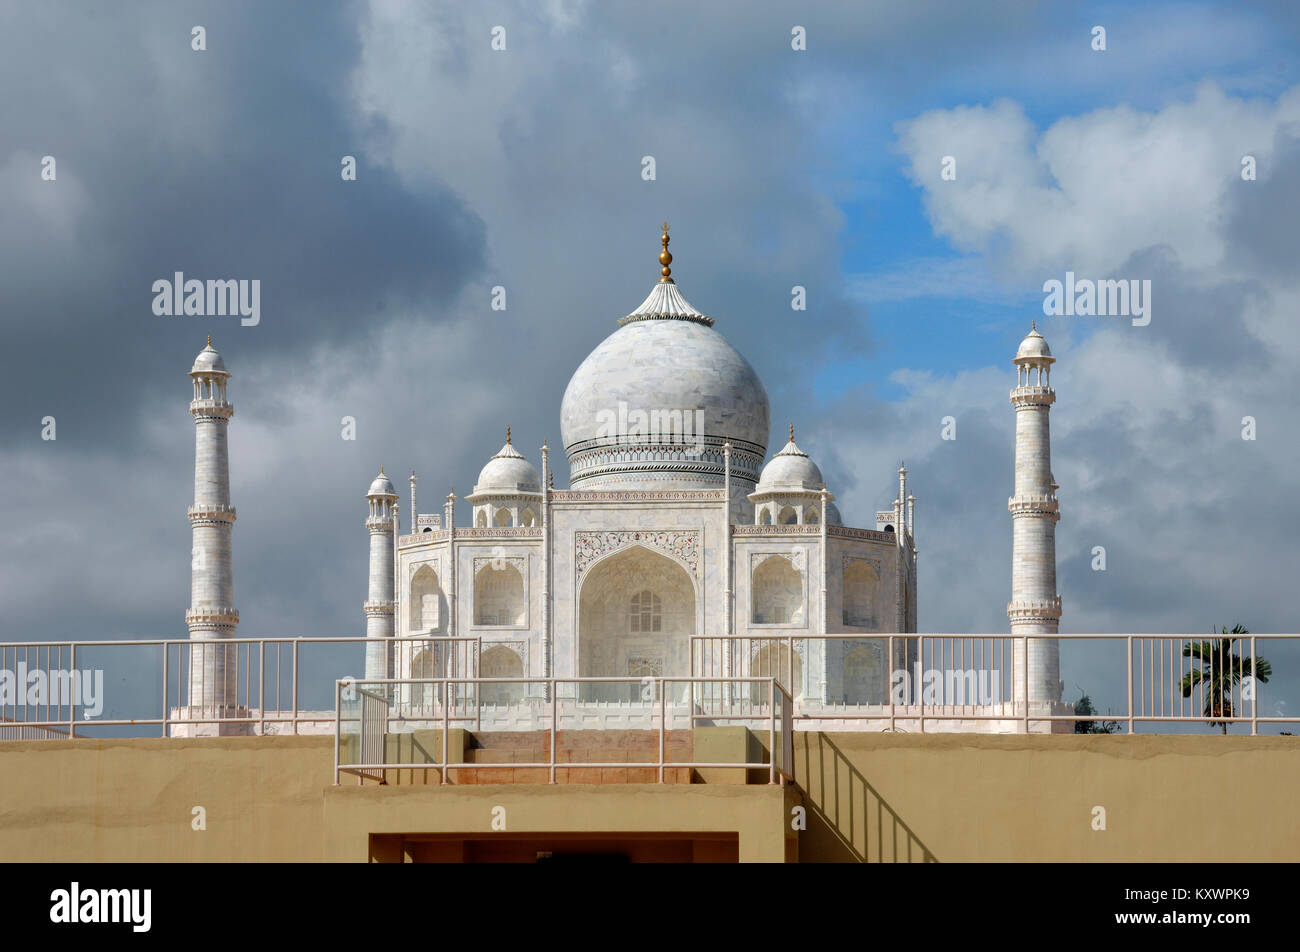 Scale Model or Replica of the Taj Mahal; Mughal or Moghal Tomb, Agra, India at the Islamic Heritage Theme Park, - Stock Image